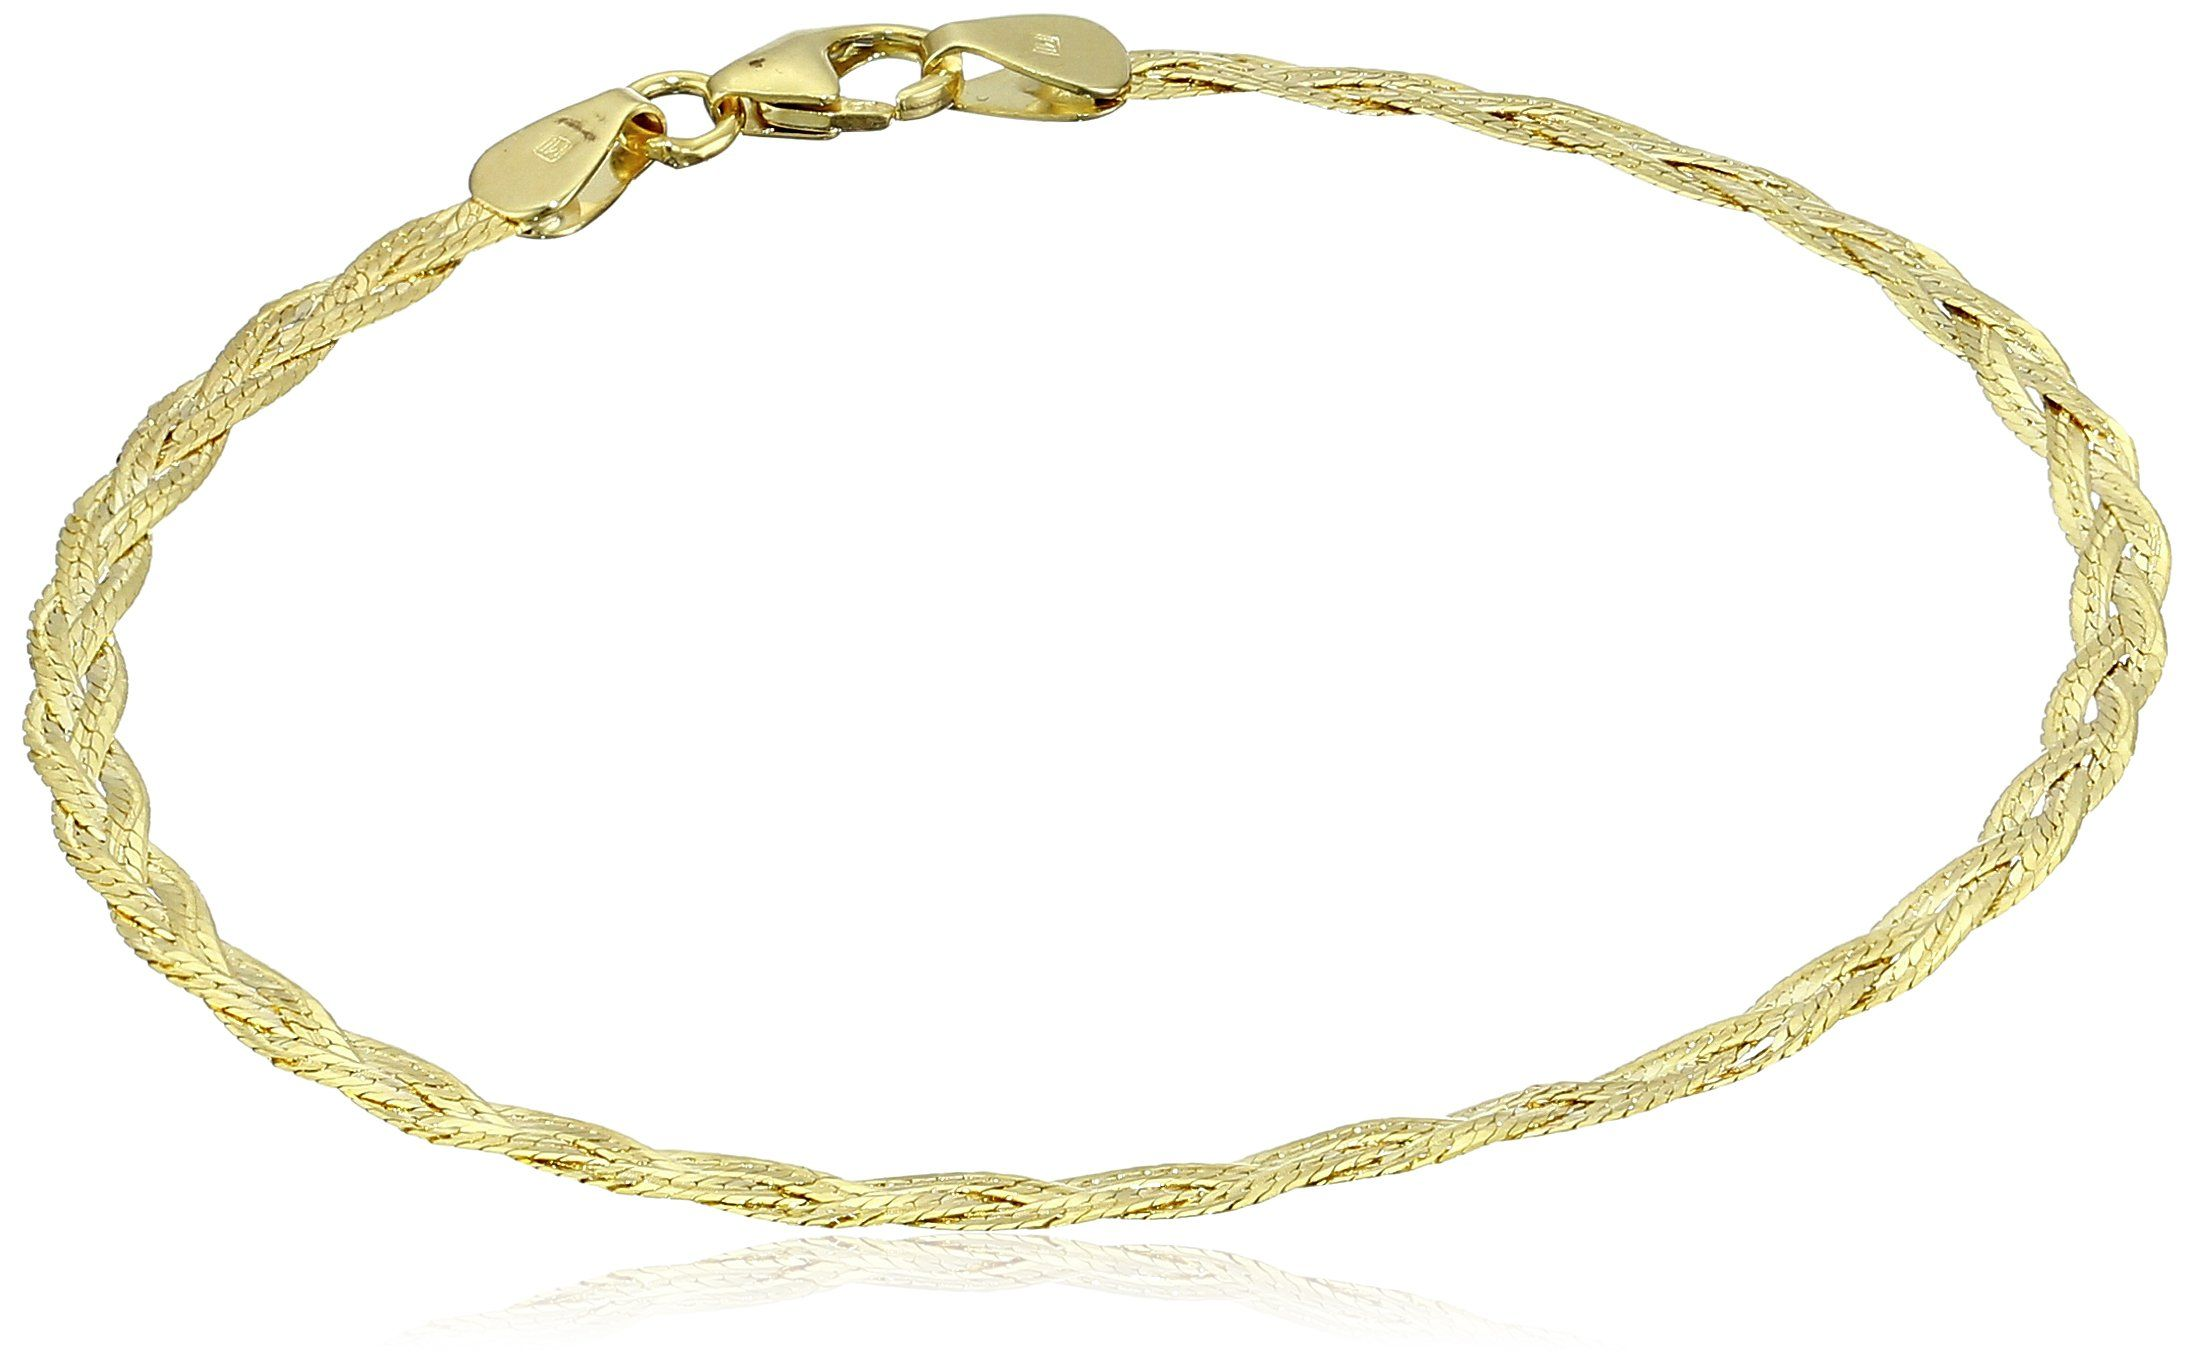 jewellery golden chain online product gold classic chains